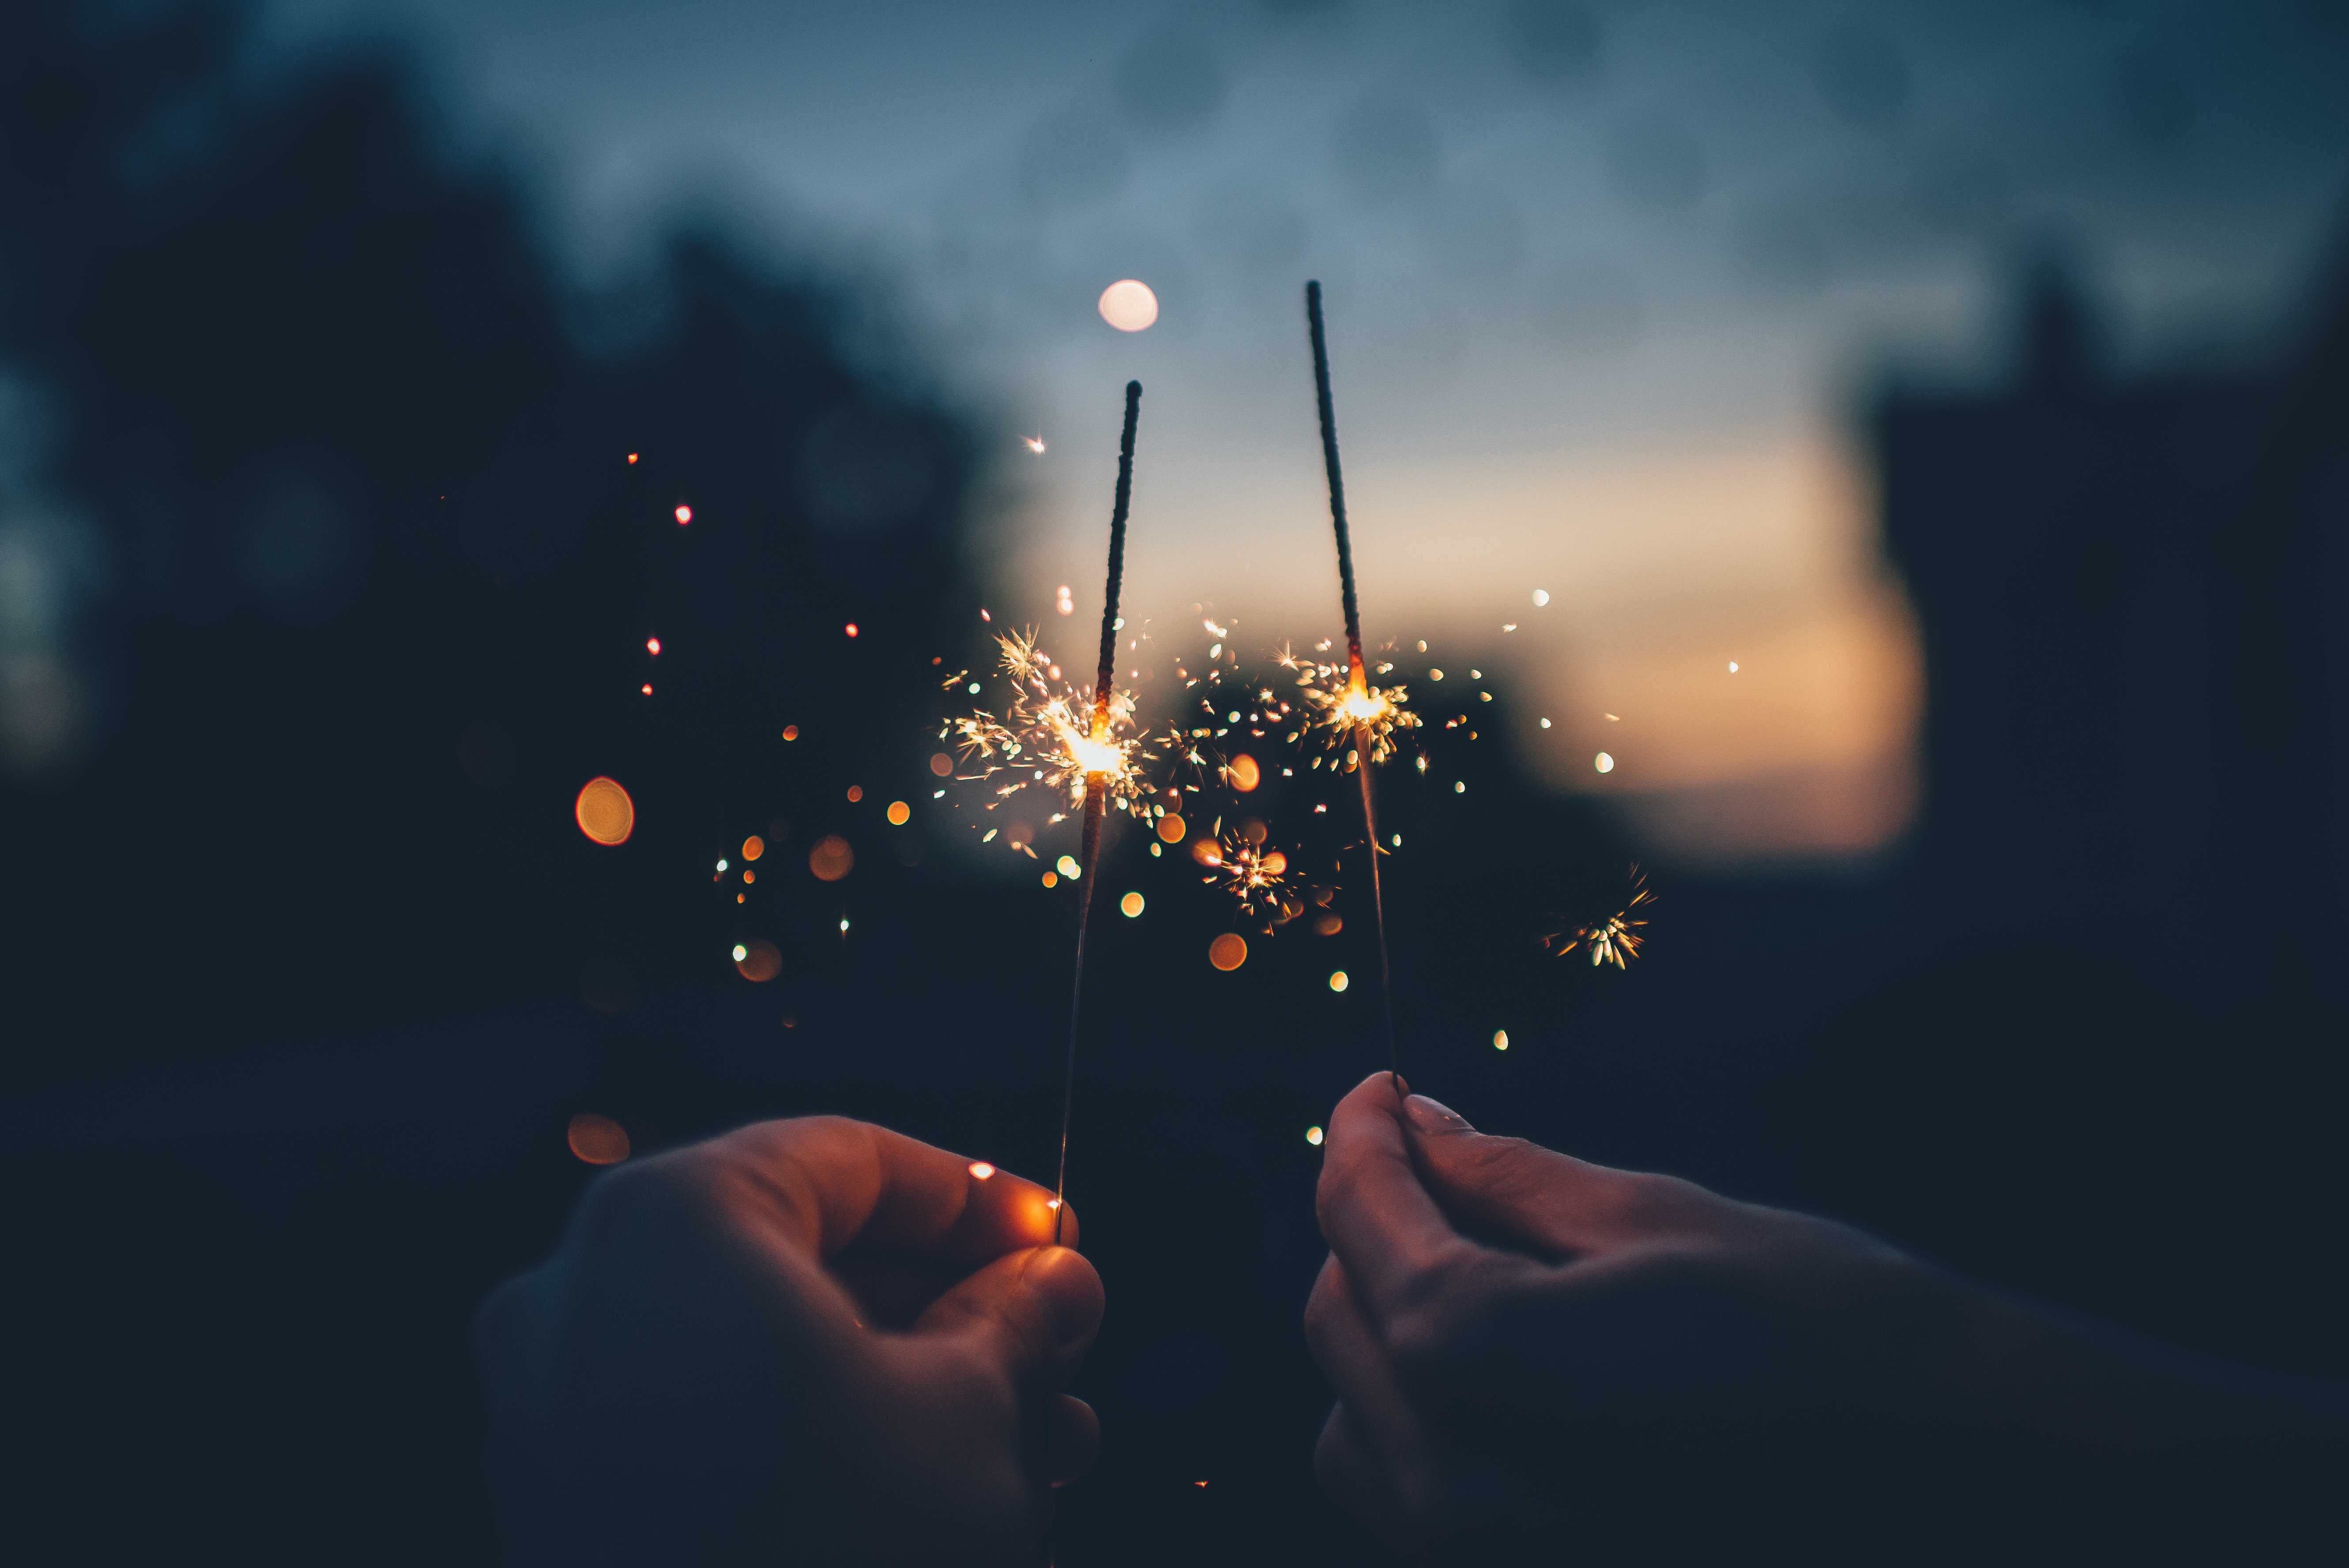 Two hands holding sparklers in twilight. (Image from Pixabay.com)